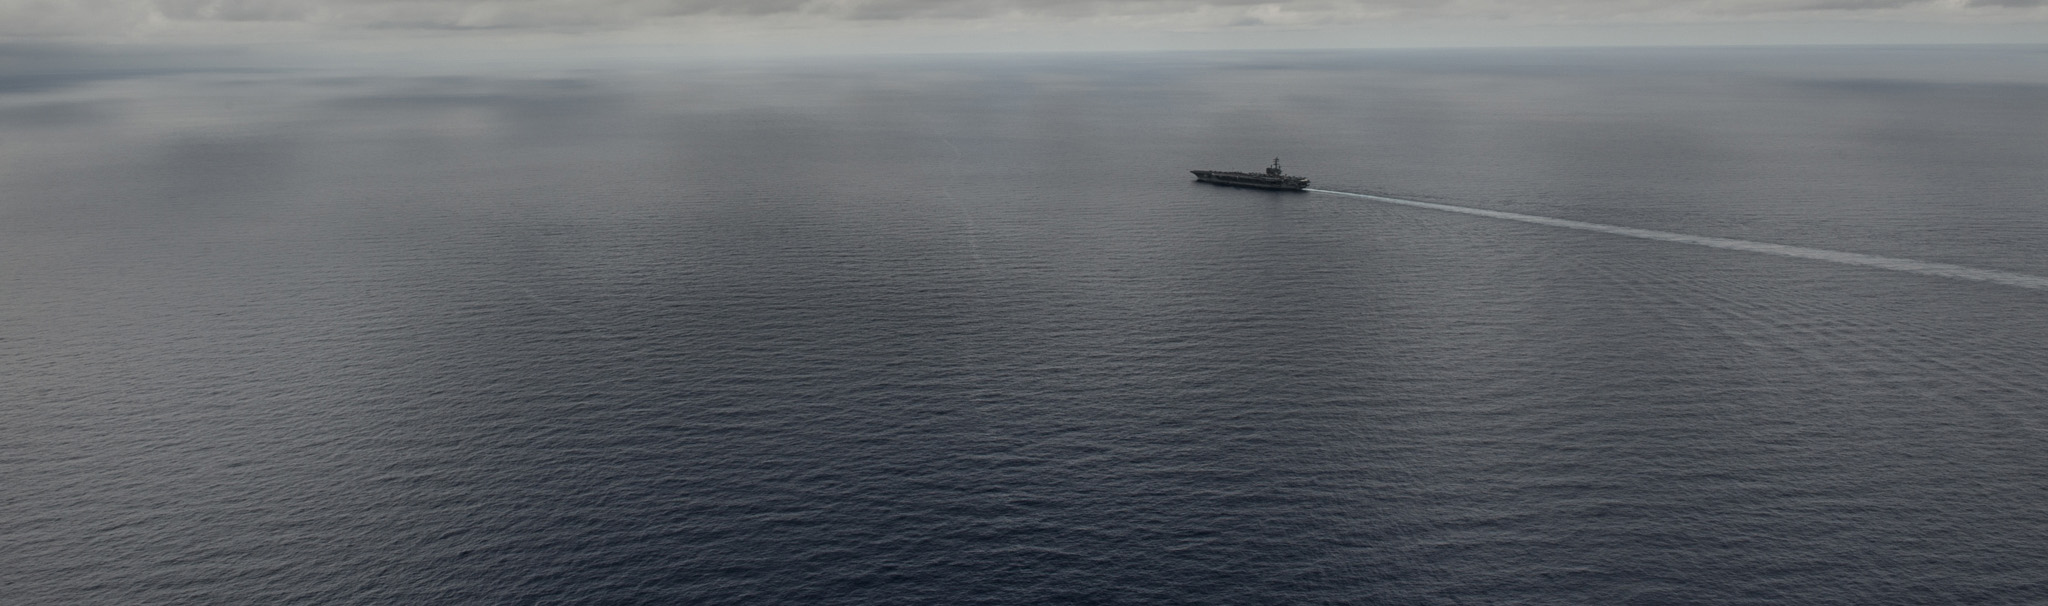 USS Ronald Reagan transits the South China Sea. (Photo: US Navy)